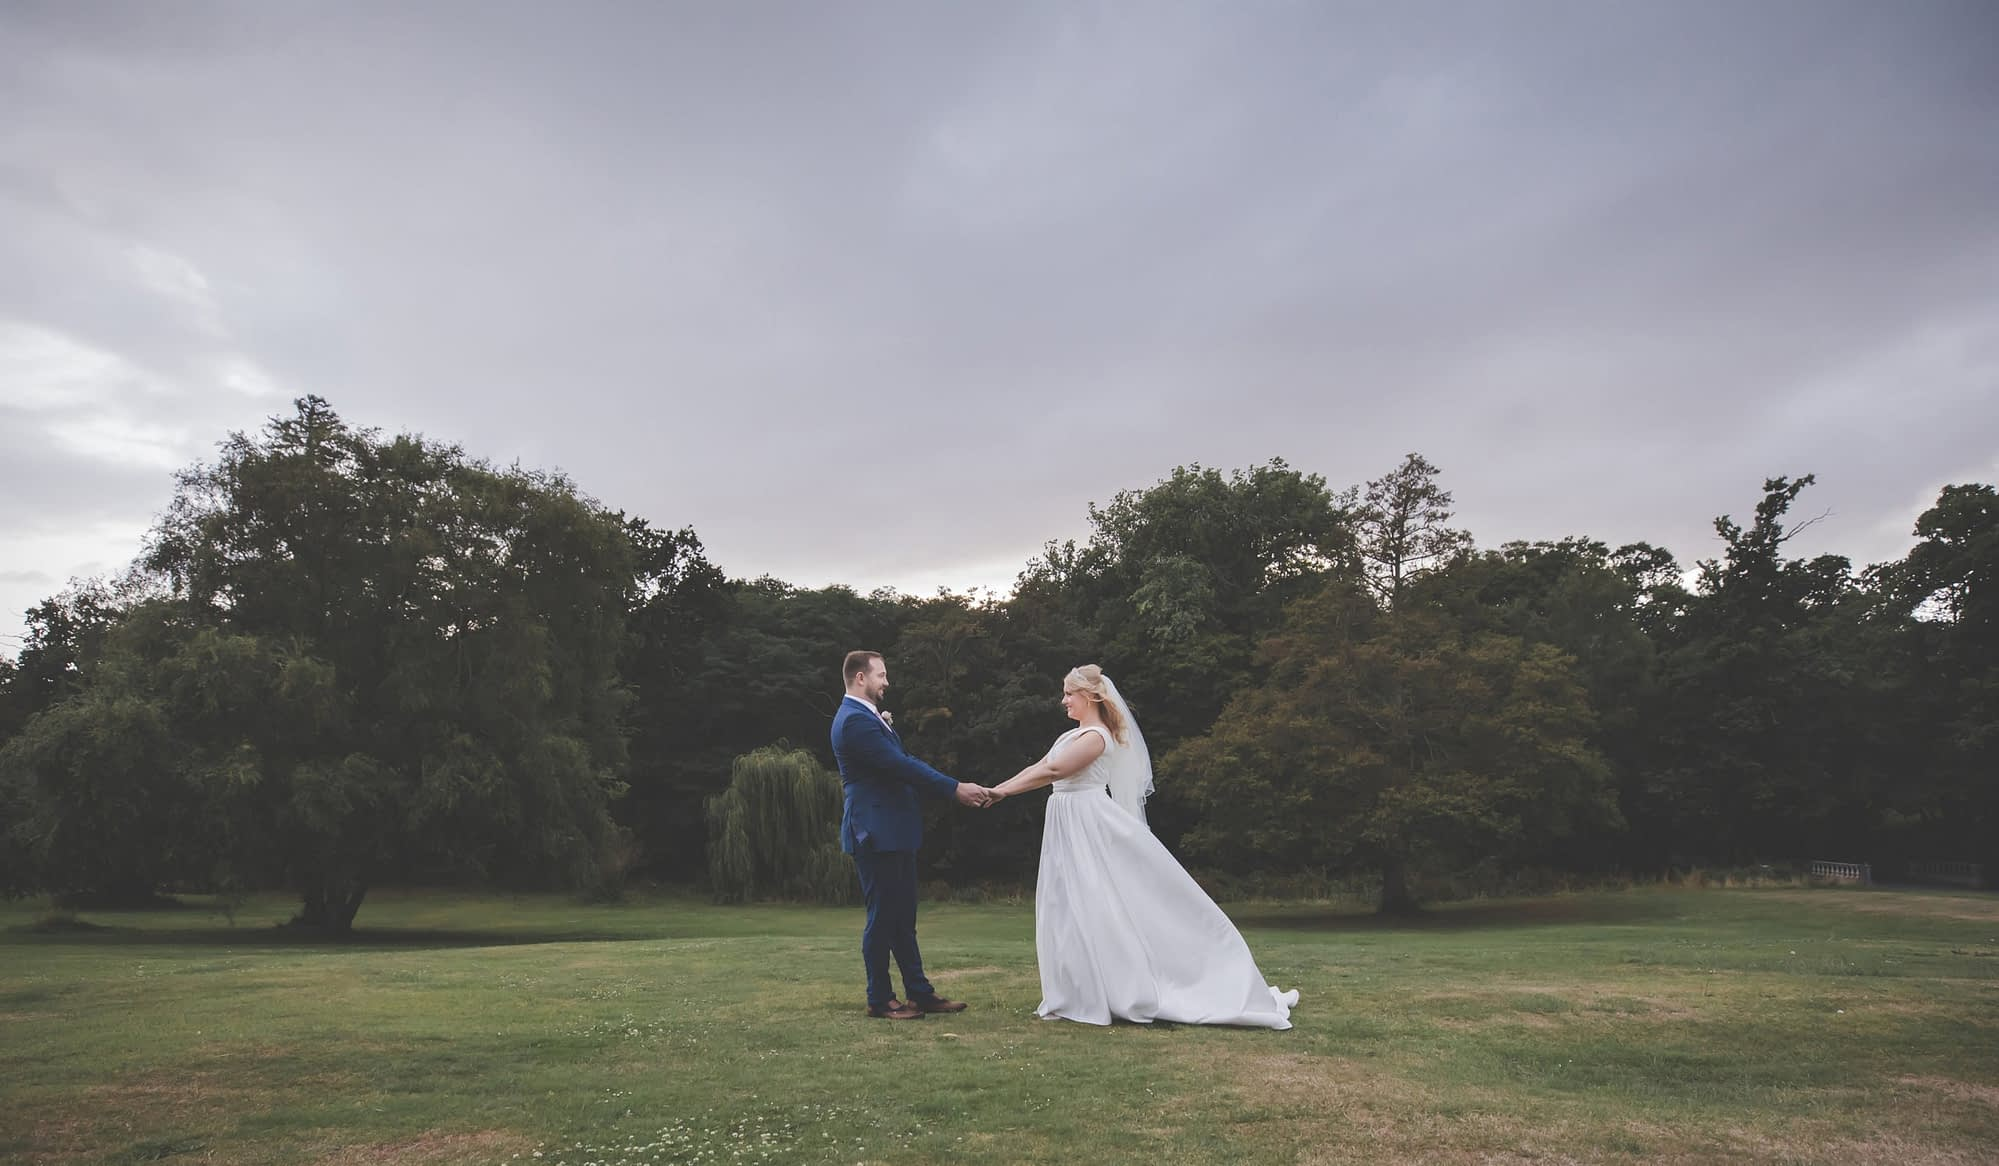 couple standing together outside with trees in the background